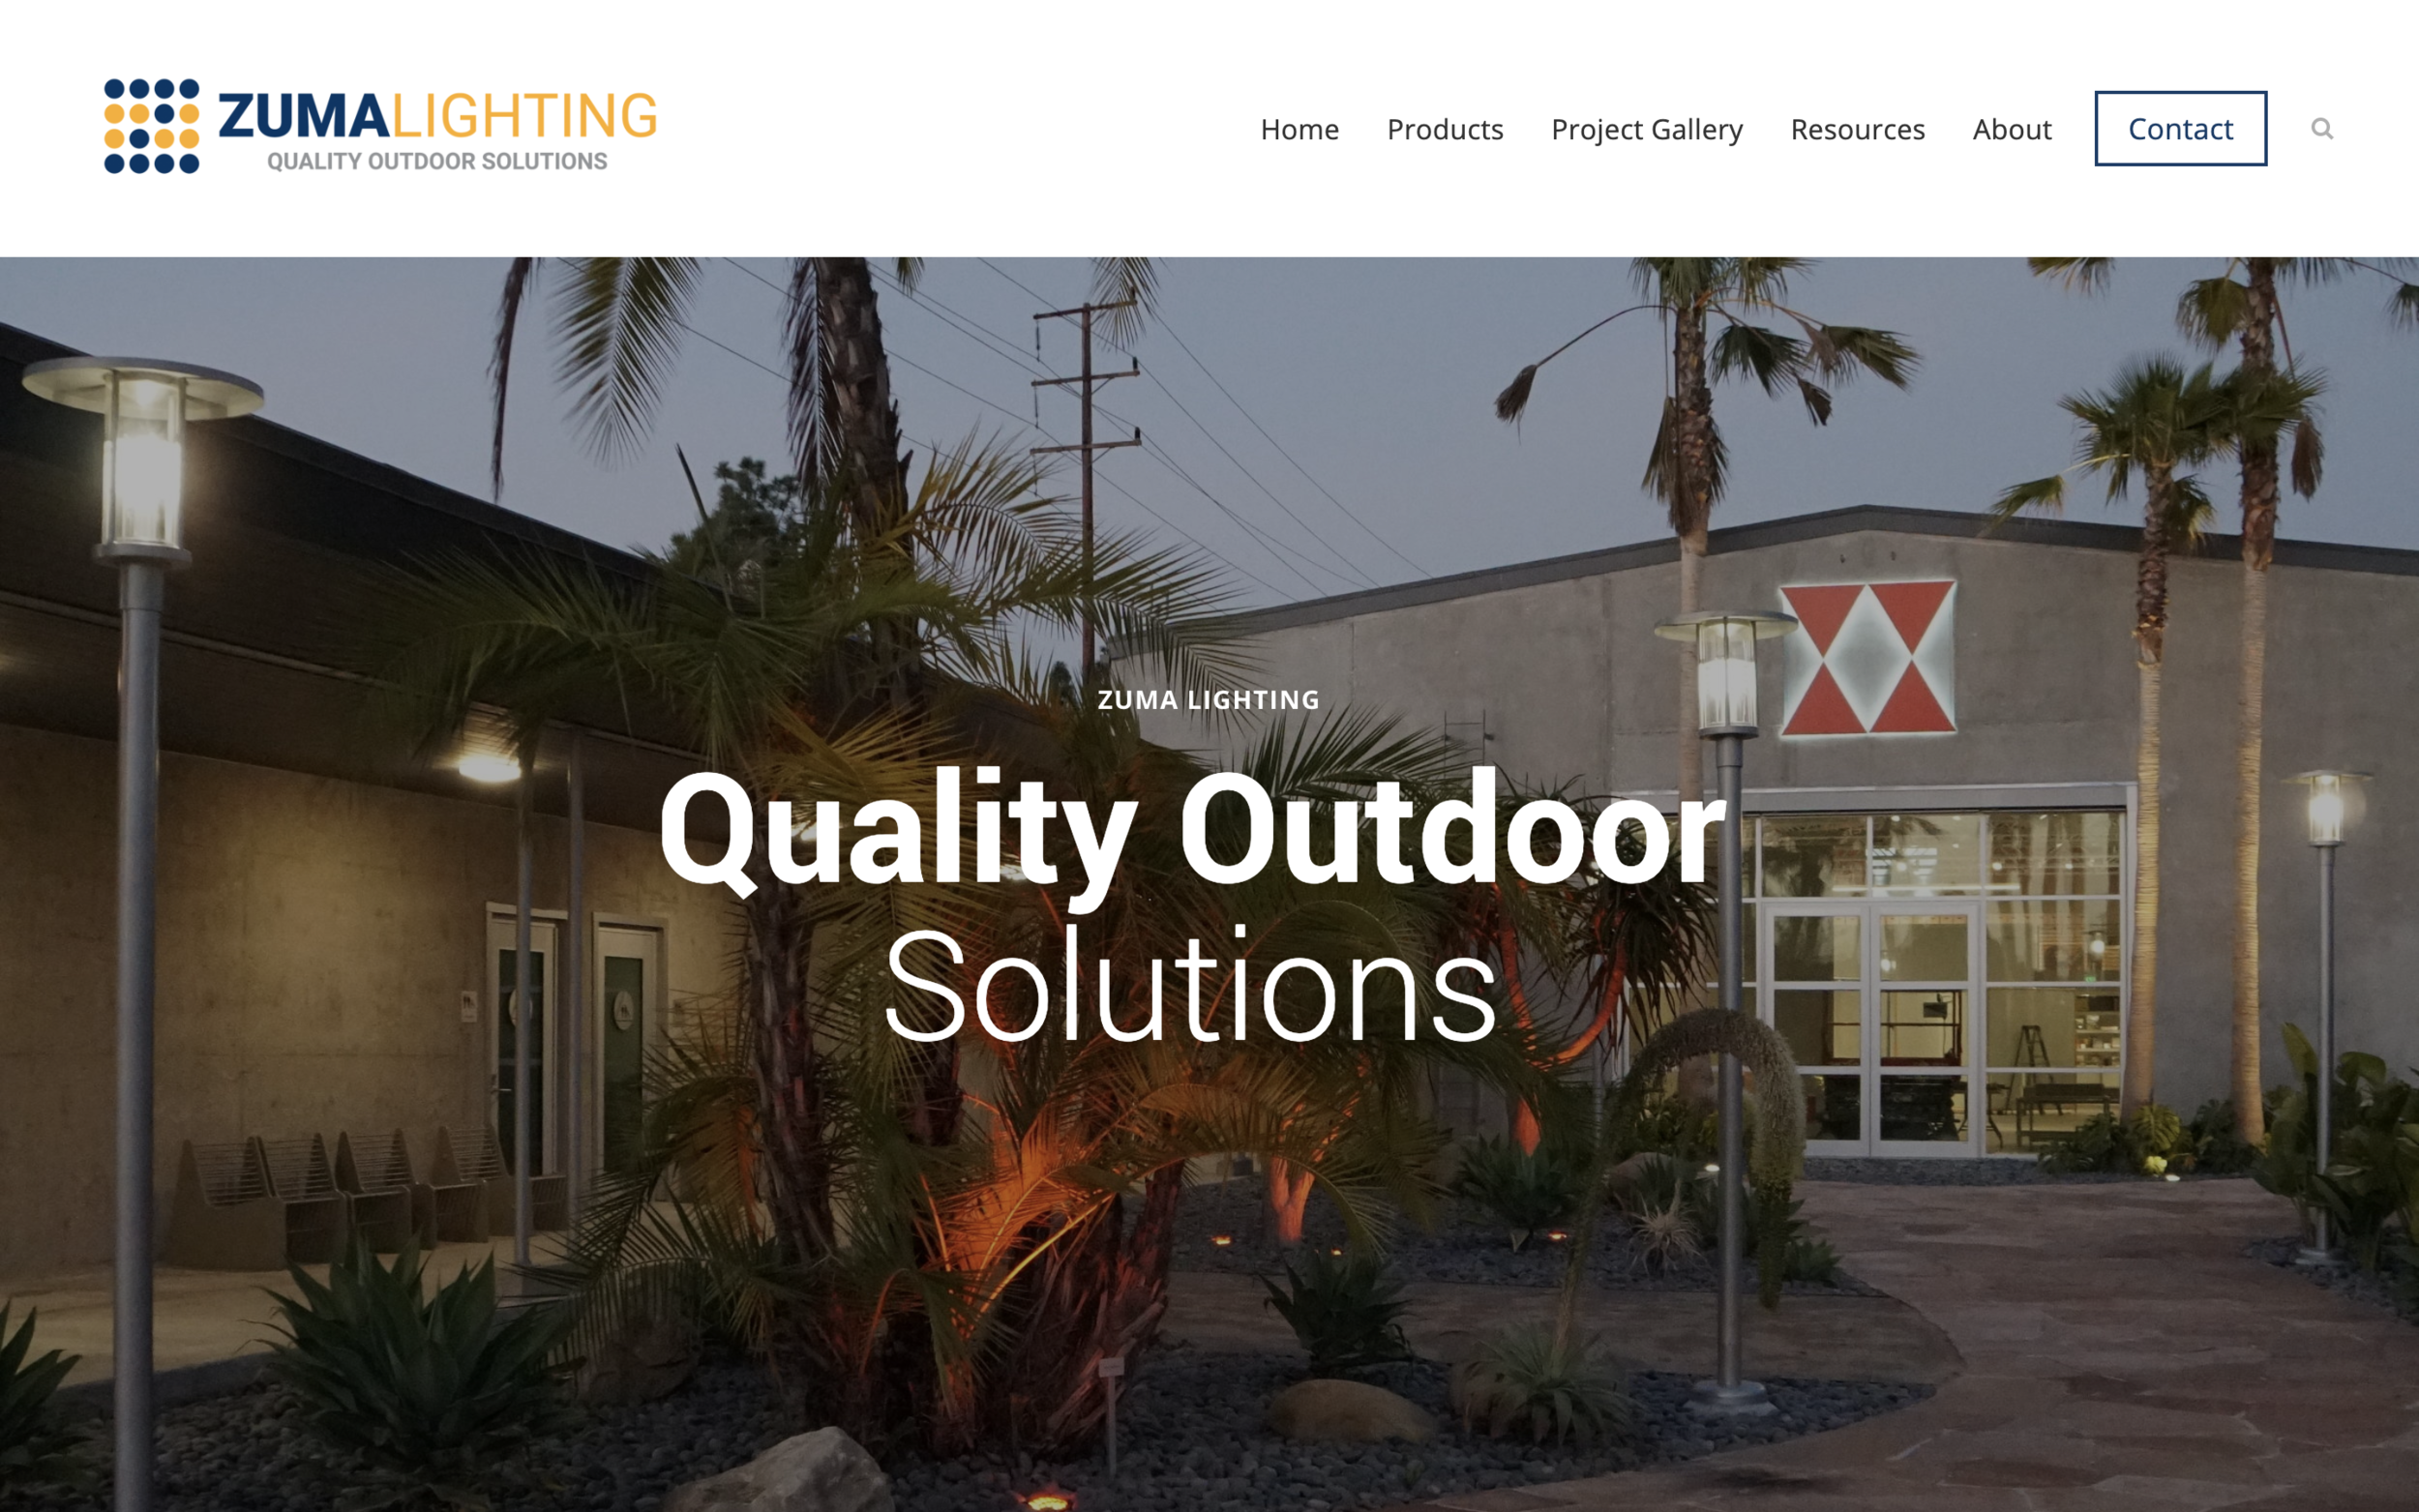 zumalighting.com - Complete Brand Design & Custom Squarespace WebsiteZuma Lighting is brining LED lights to parking lots, sports fields, and outdoor arenas in Souther California. We built a website that would house everything they need.